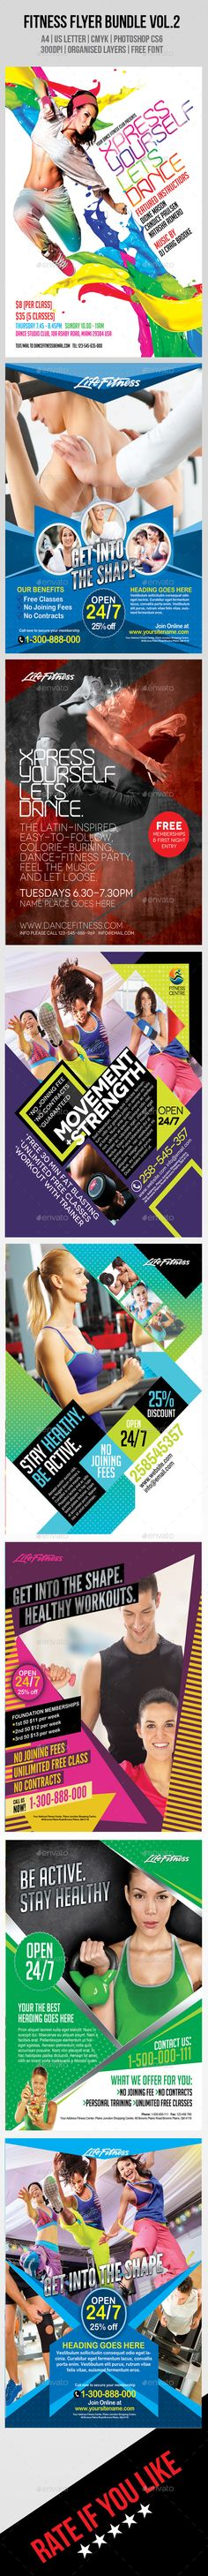 Fitness Flyer Bundle Template PSD   Buy and Download: http://graphicriver.net/item/fitness-flyer-bundle-vol2/8889236?WT.ac=category_thumb&WT.z_author=inddesigner&ref=ksioks